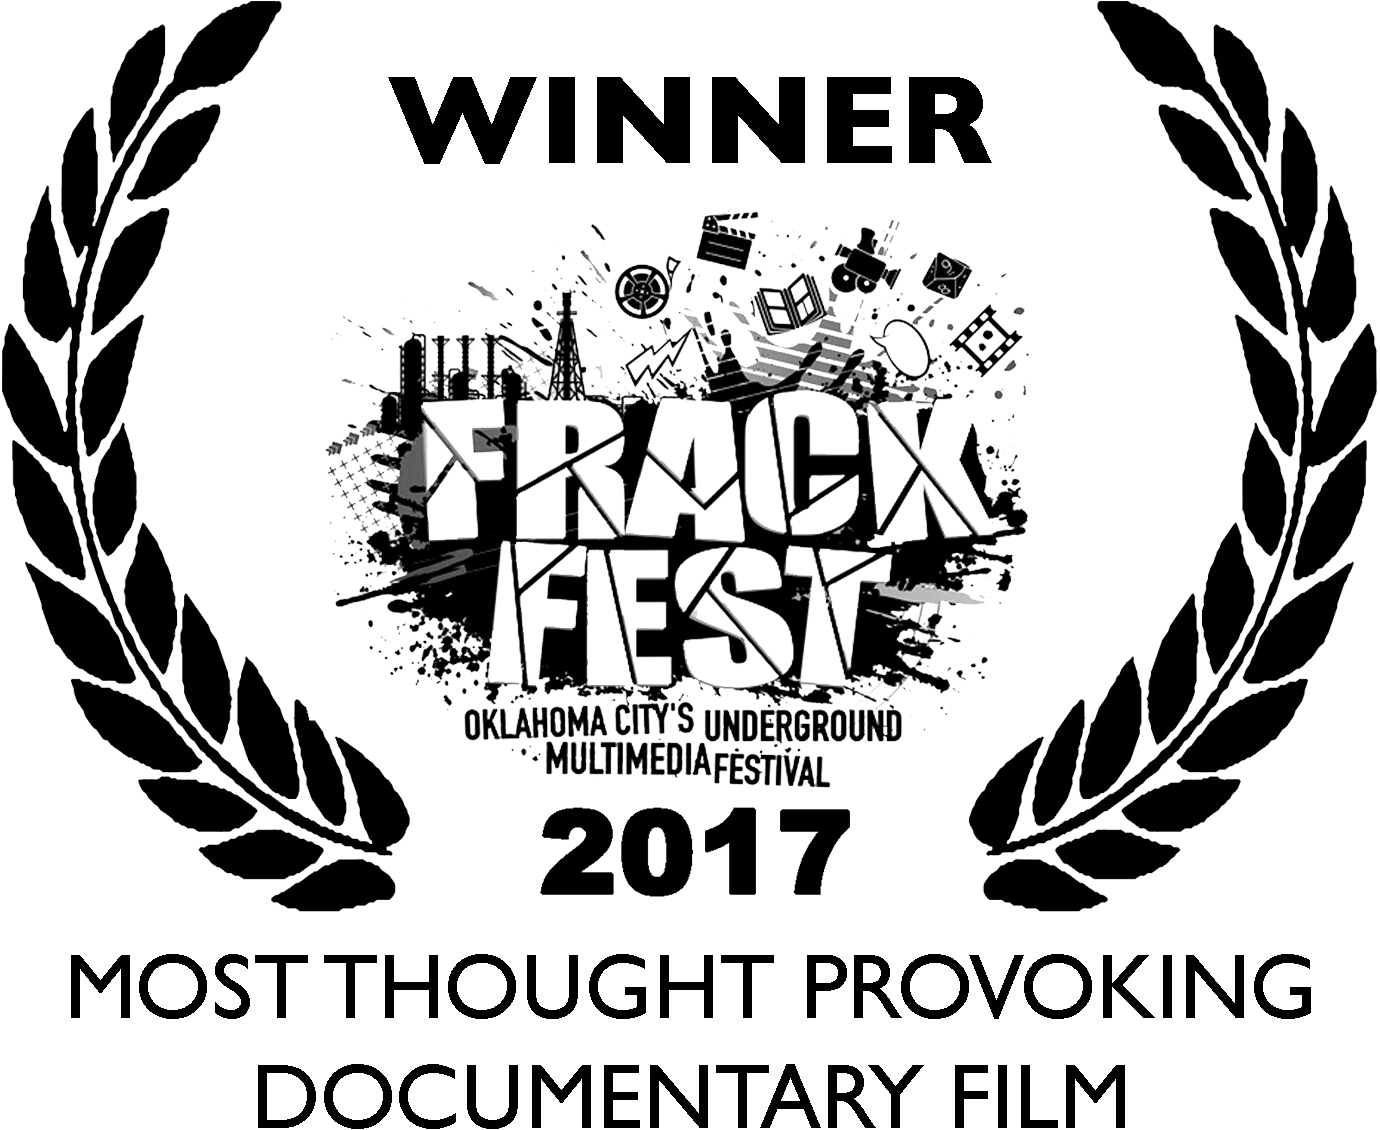 Sofia Wellman - Whats Love Got To Do With It - Film by Sofia Wellman - Frack Fest Oklahoma City - Winner - Most Thought Provoking - 2017